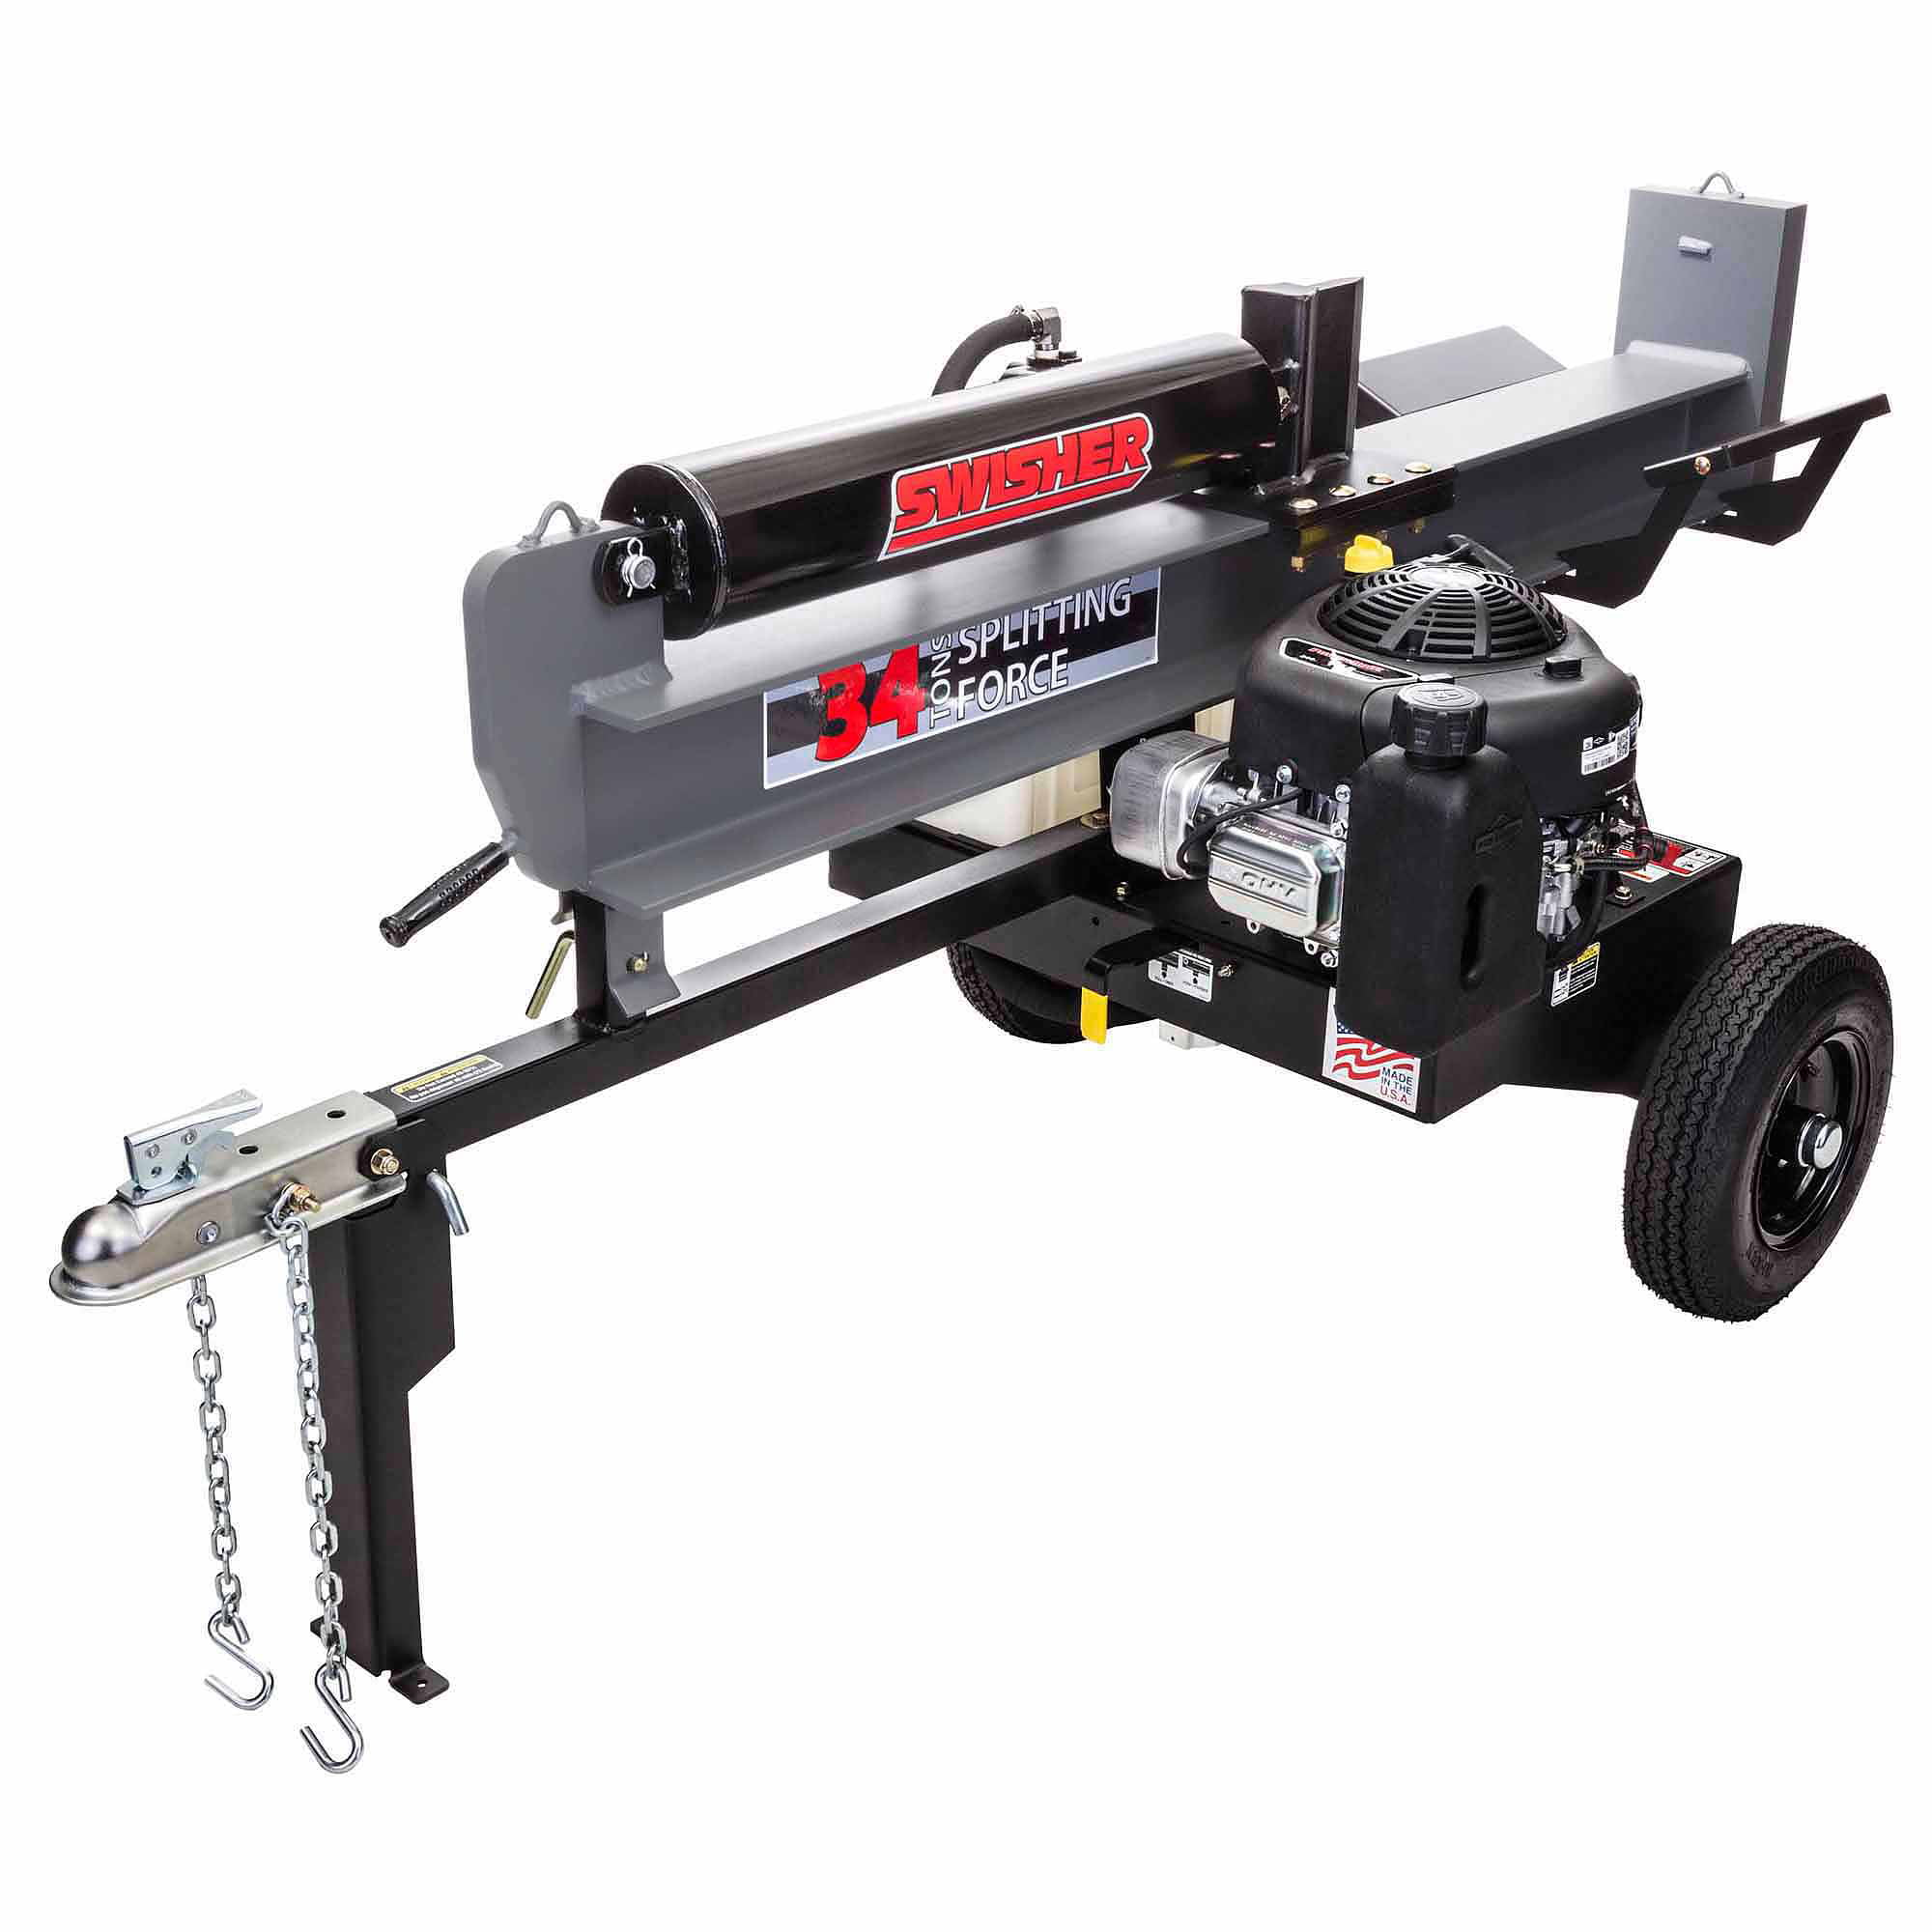 11.5 HP 34 Ton Log Splitter by Swisher Acquisition, Inc